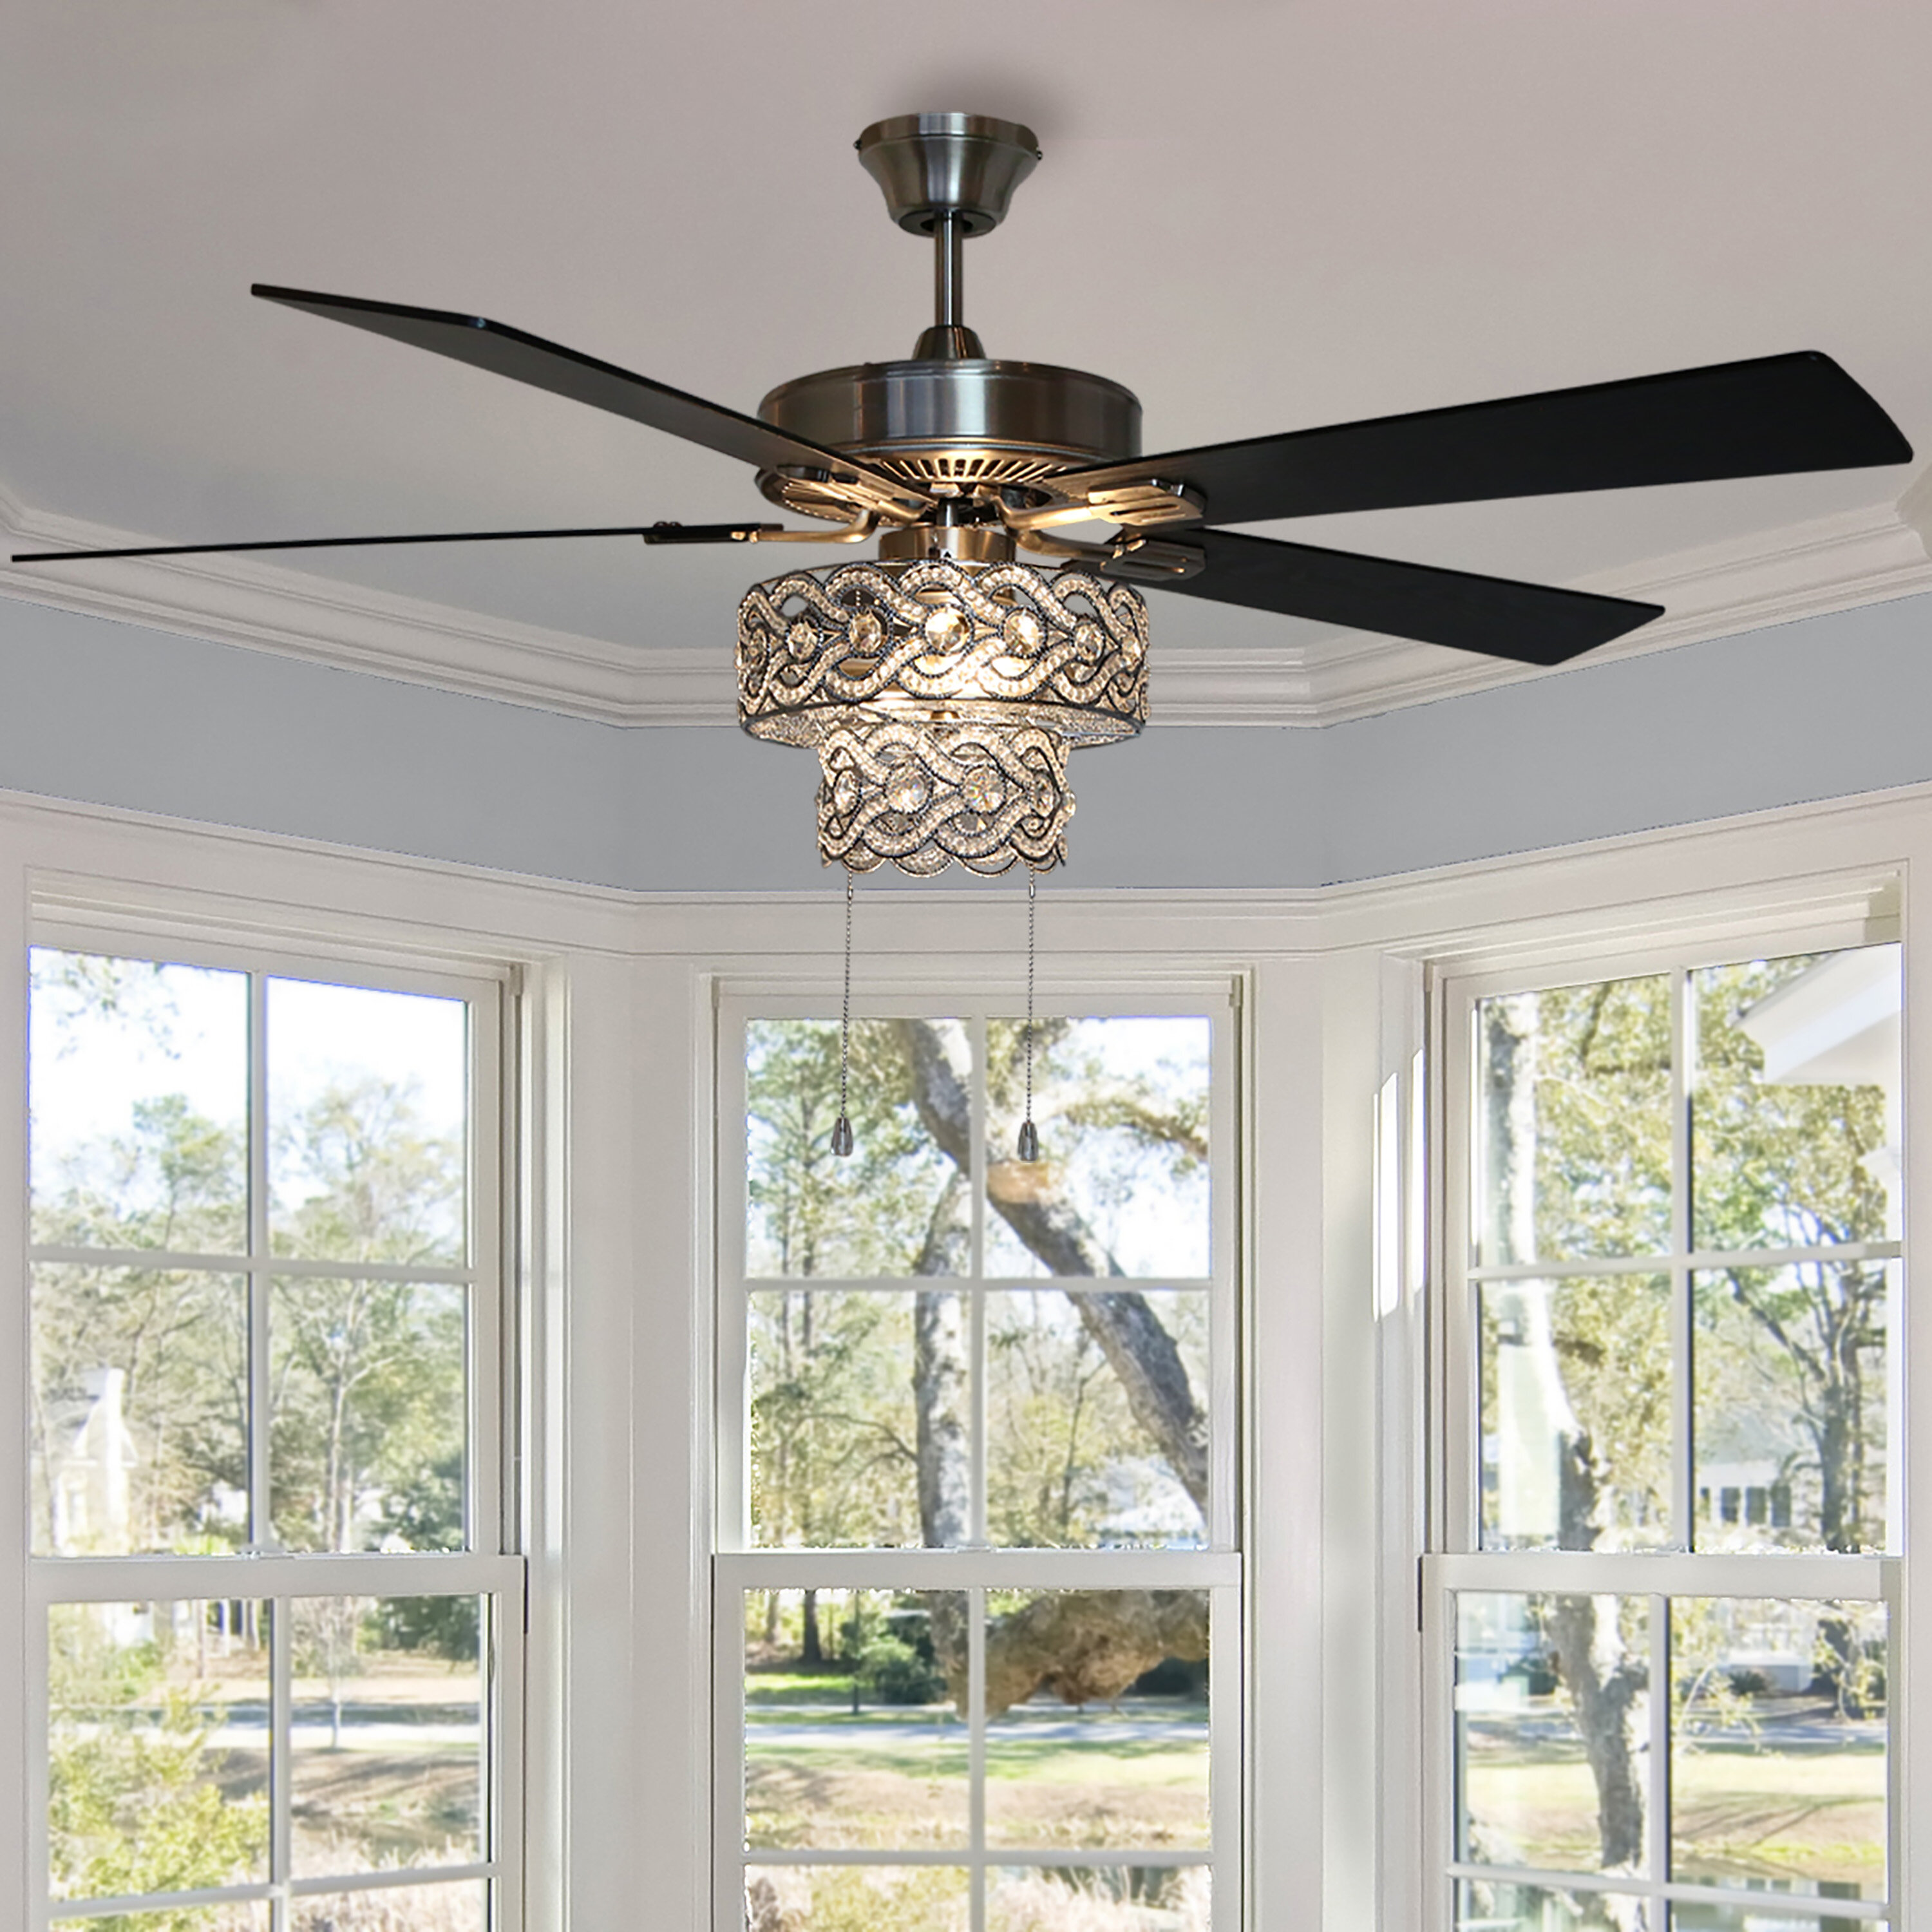 House Of Hampton 52 Nowthen 5 Blade Crystal Ceiling Fan With Pull Chain And Light Kit Included Reviews Wayfair